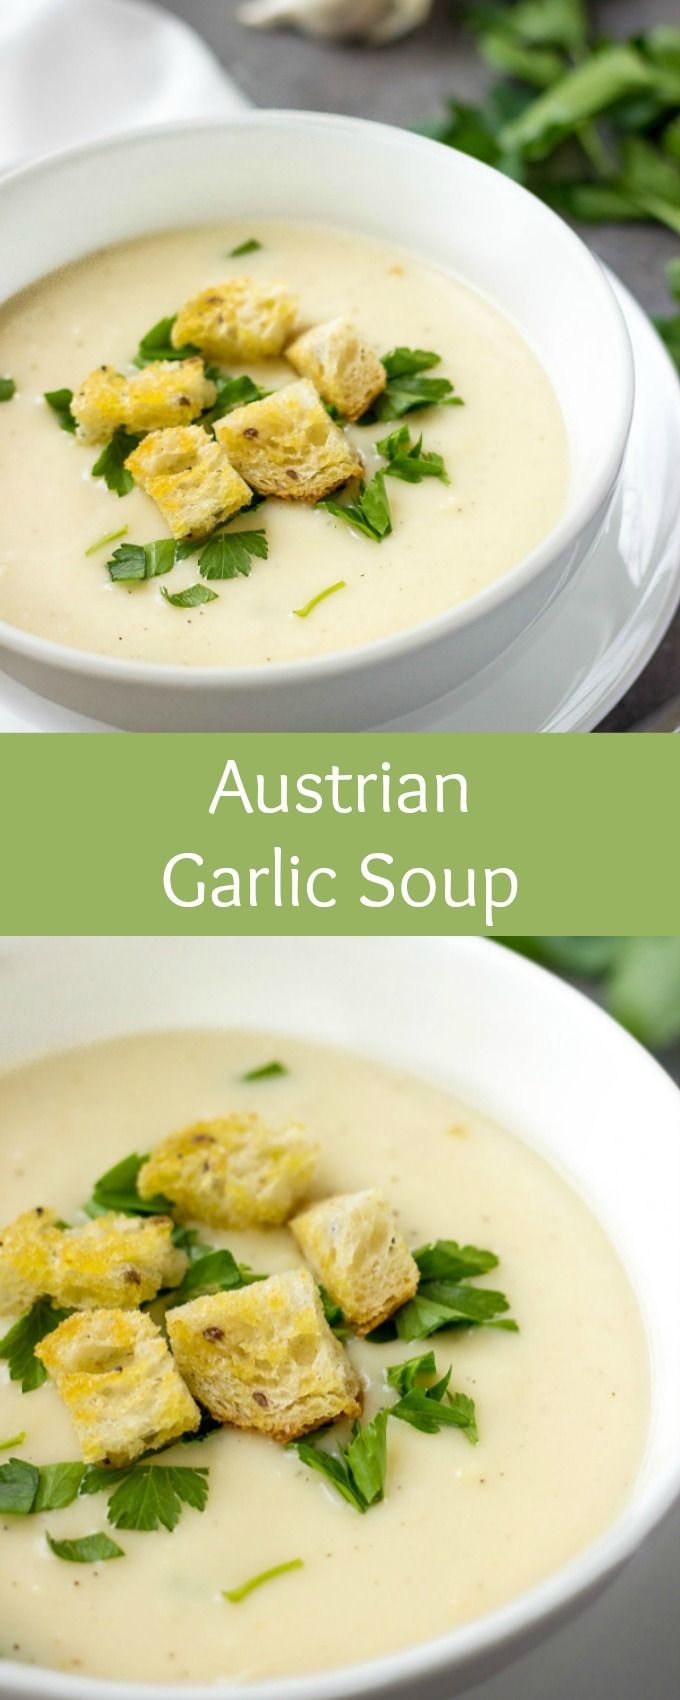 Austrian garlic soup with croutons receta sopas guisos y platos austrian garlic soup with croutons receta sopas guisos y platos principales forumfinder Image collections